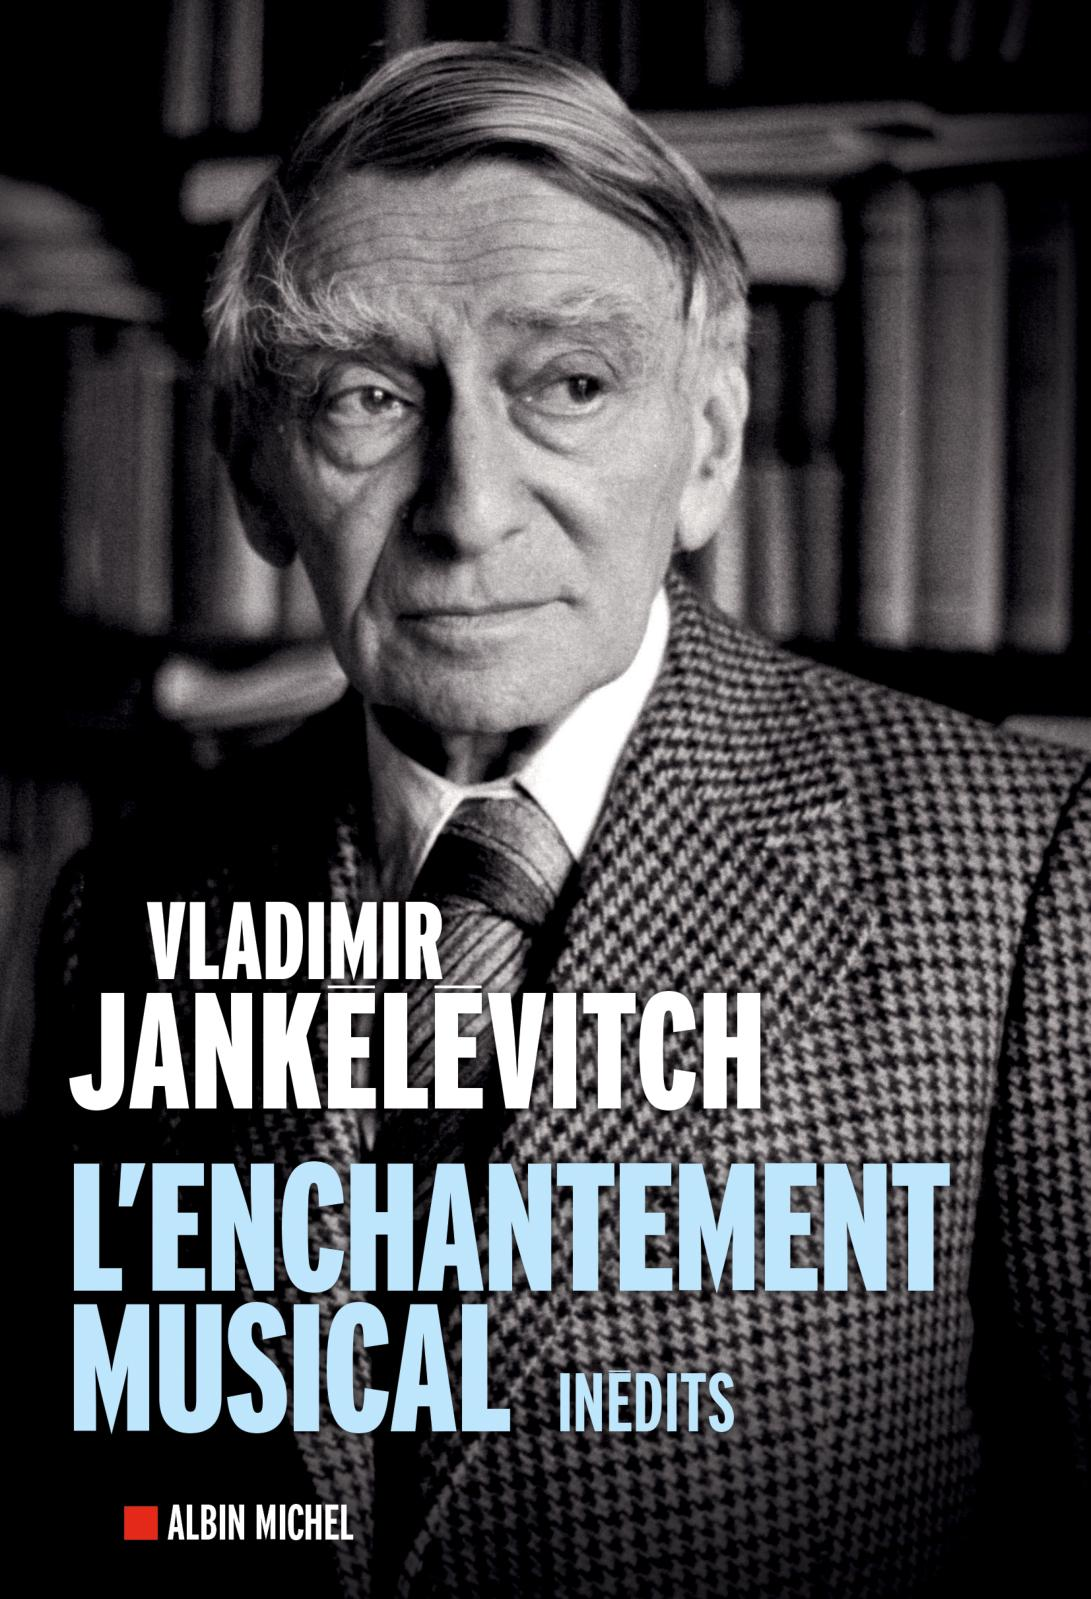 L'Enchantement musical, Vladimir Jankélévitch